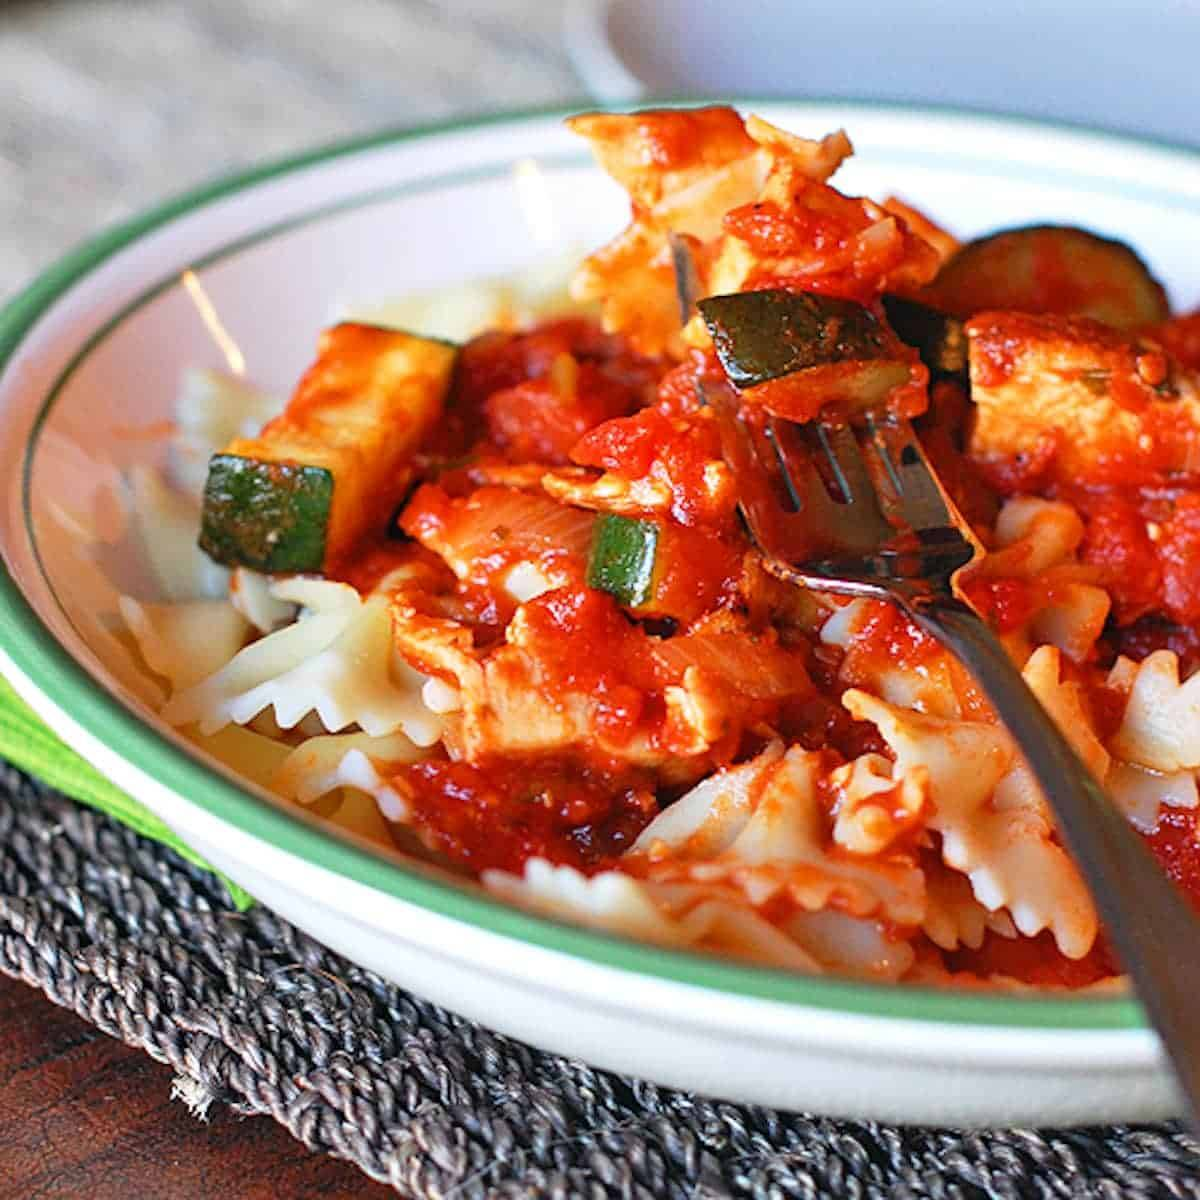 A quick and easy 5 ingredient recipe for chicken zucchini pasta. Made with bowties, tomato sauce, sauteed zucchini, shredded chicken, and Parmesan. | pinchofyum.com